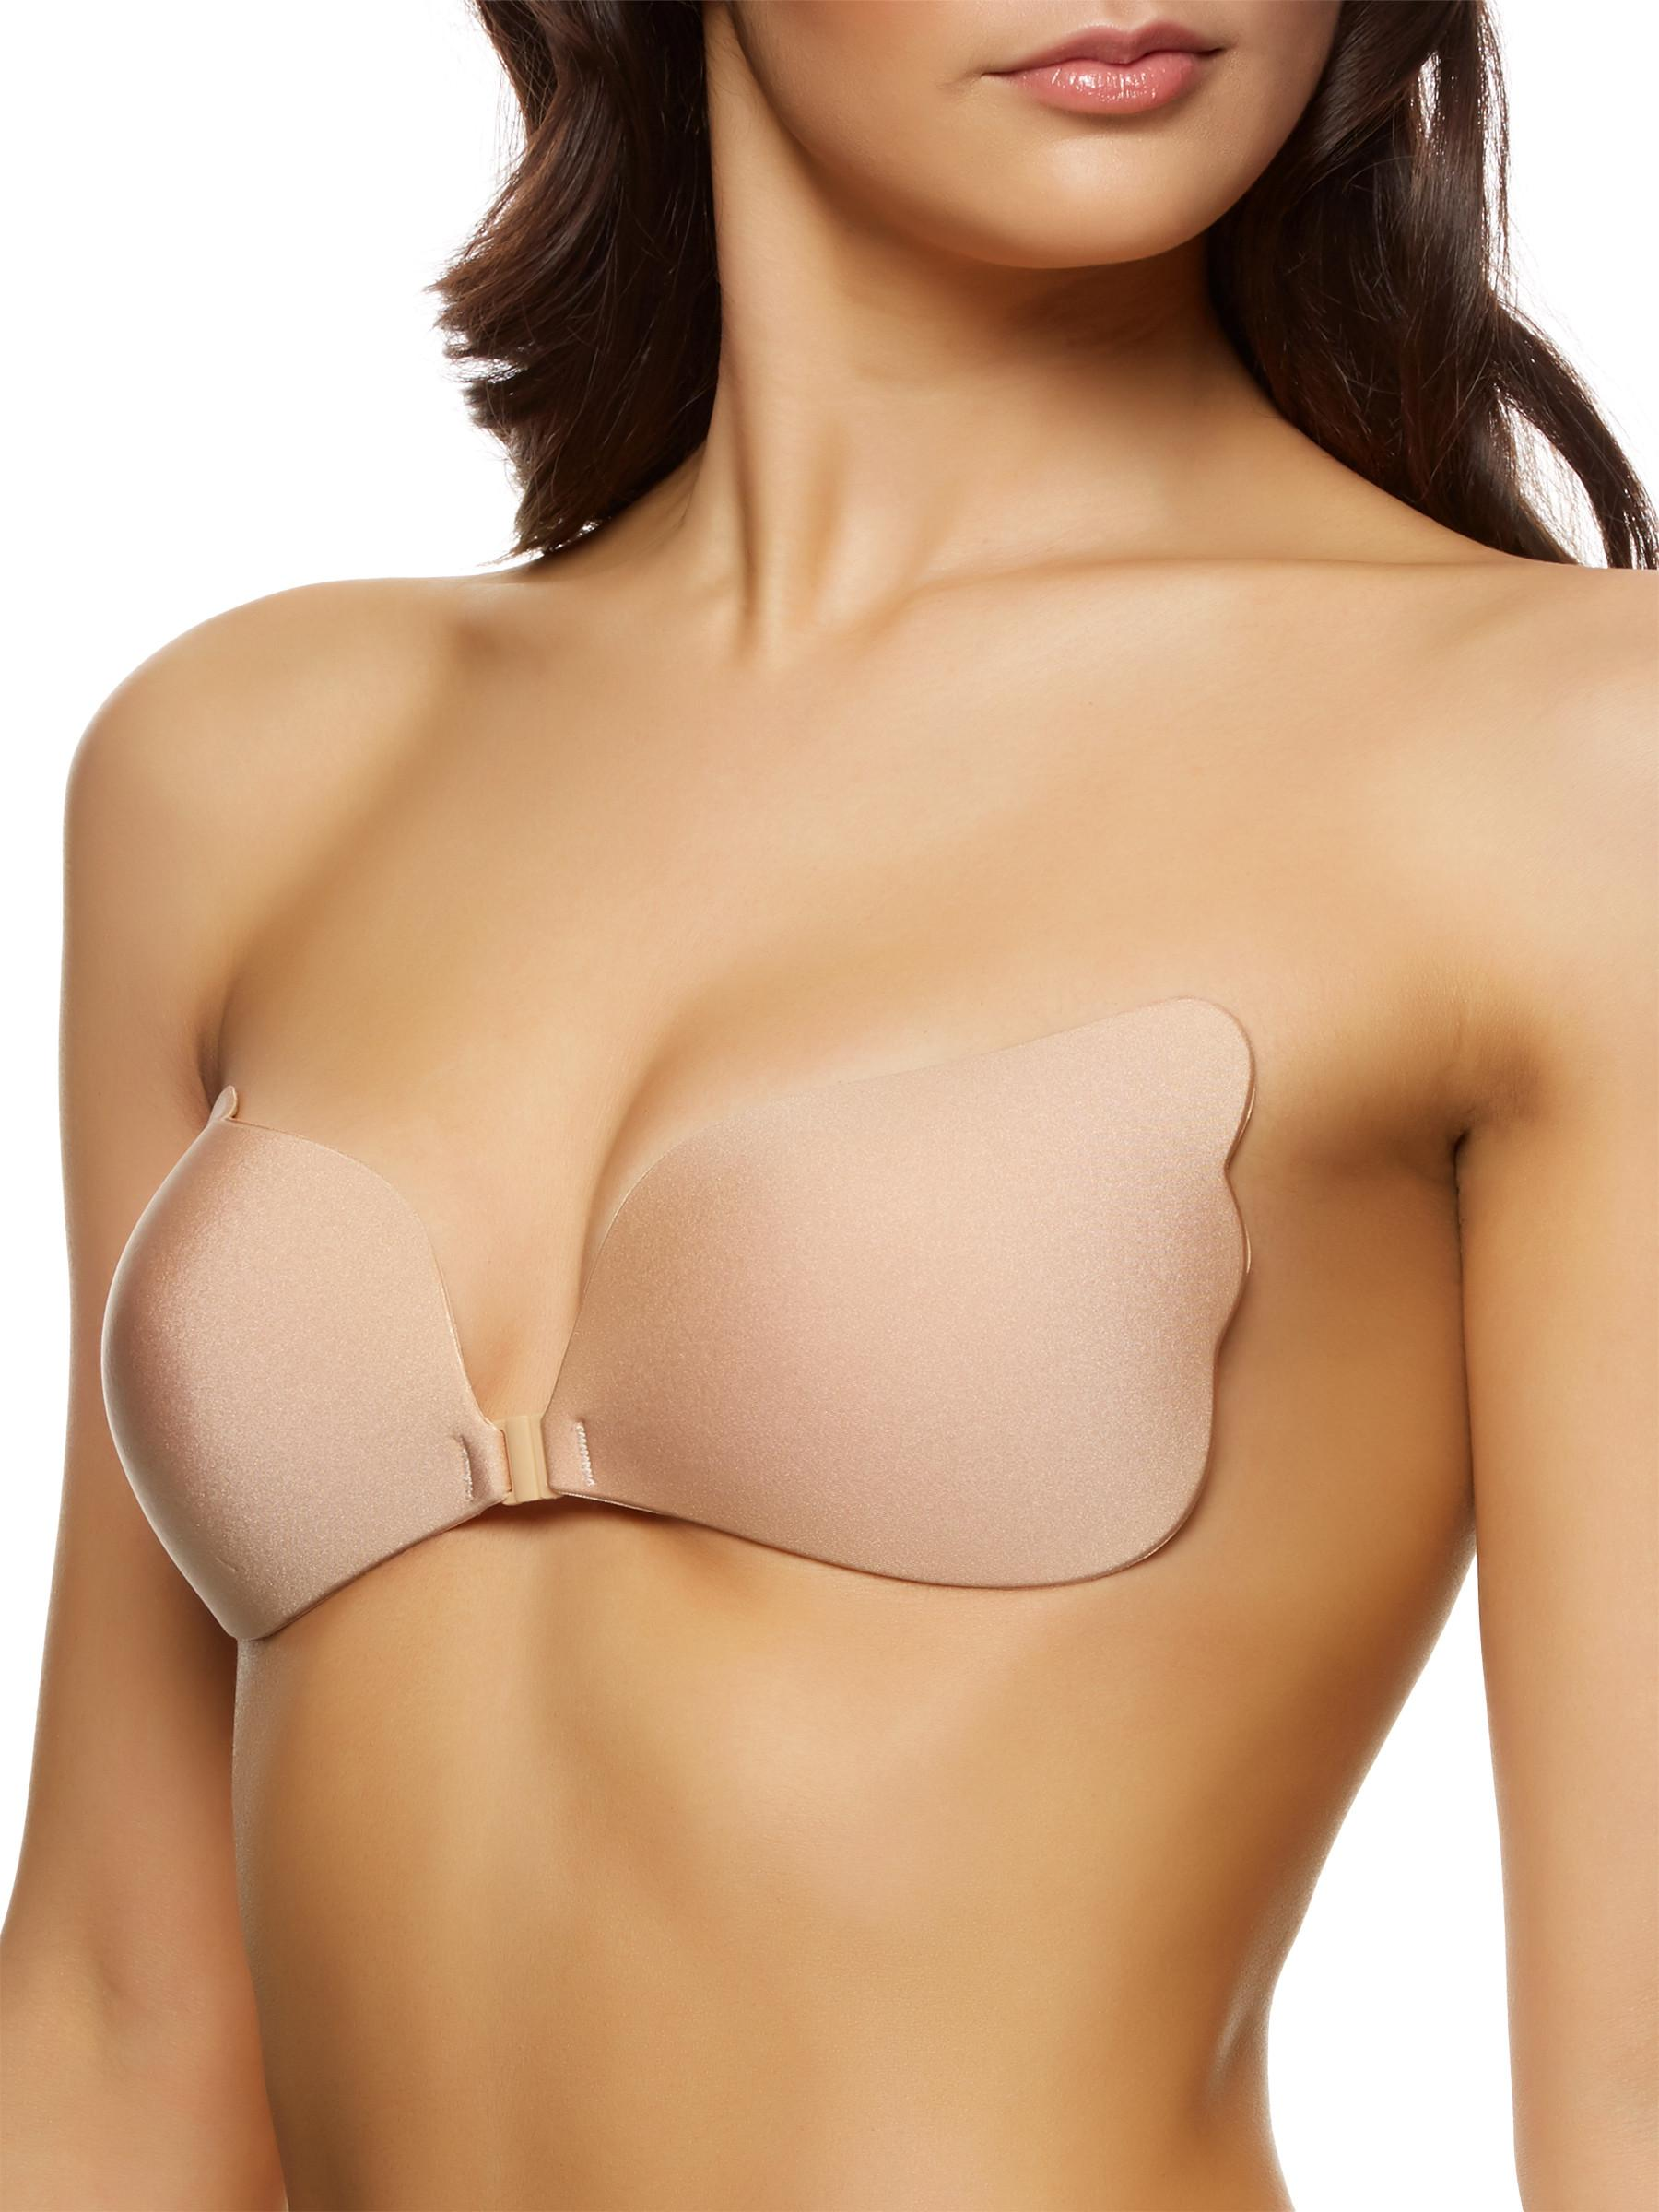 30d936ff5 Details about Ann Summers Womens Stick On Backless And Strapless Bra Sexy  Lingerie Underwear